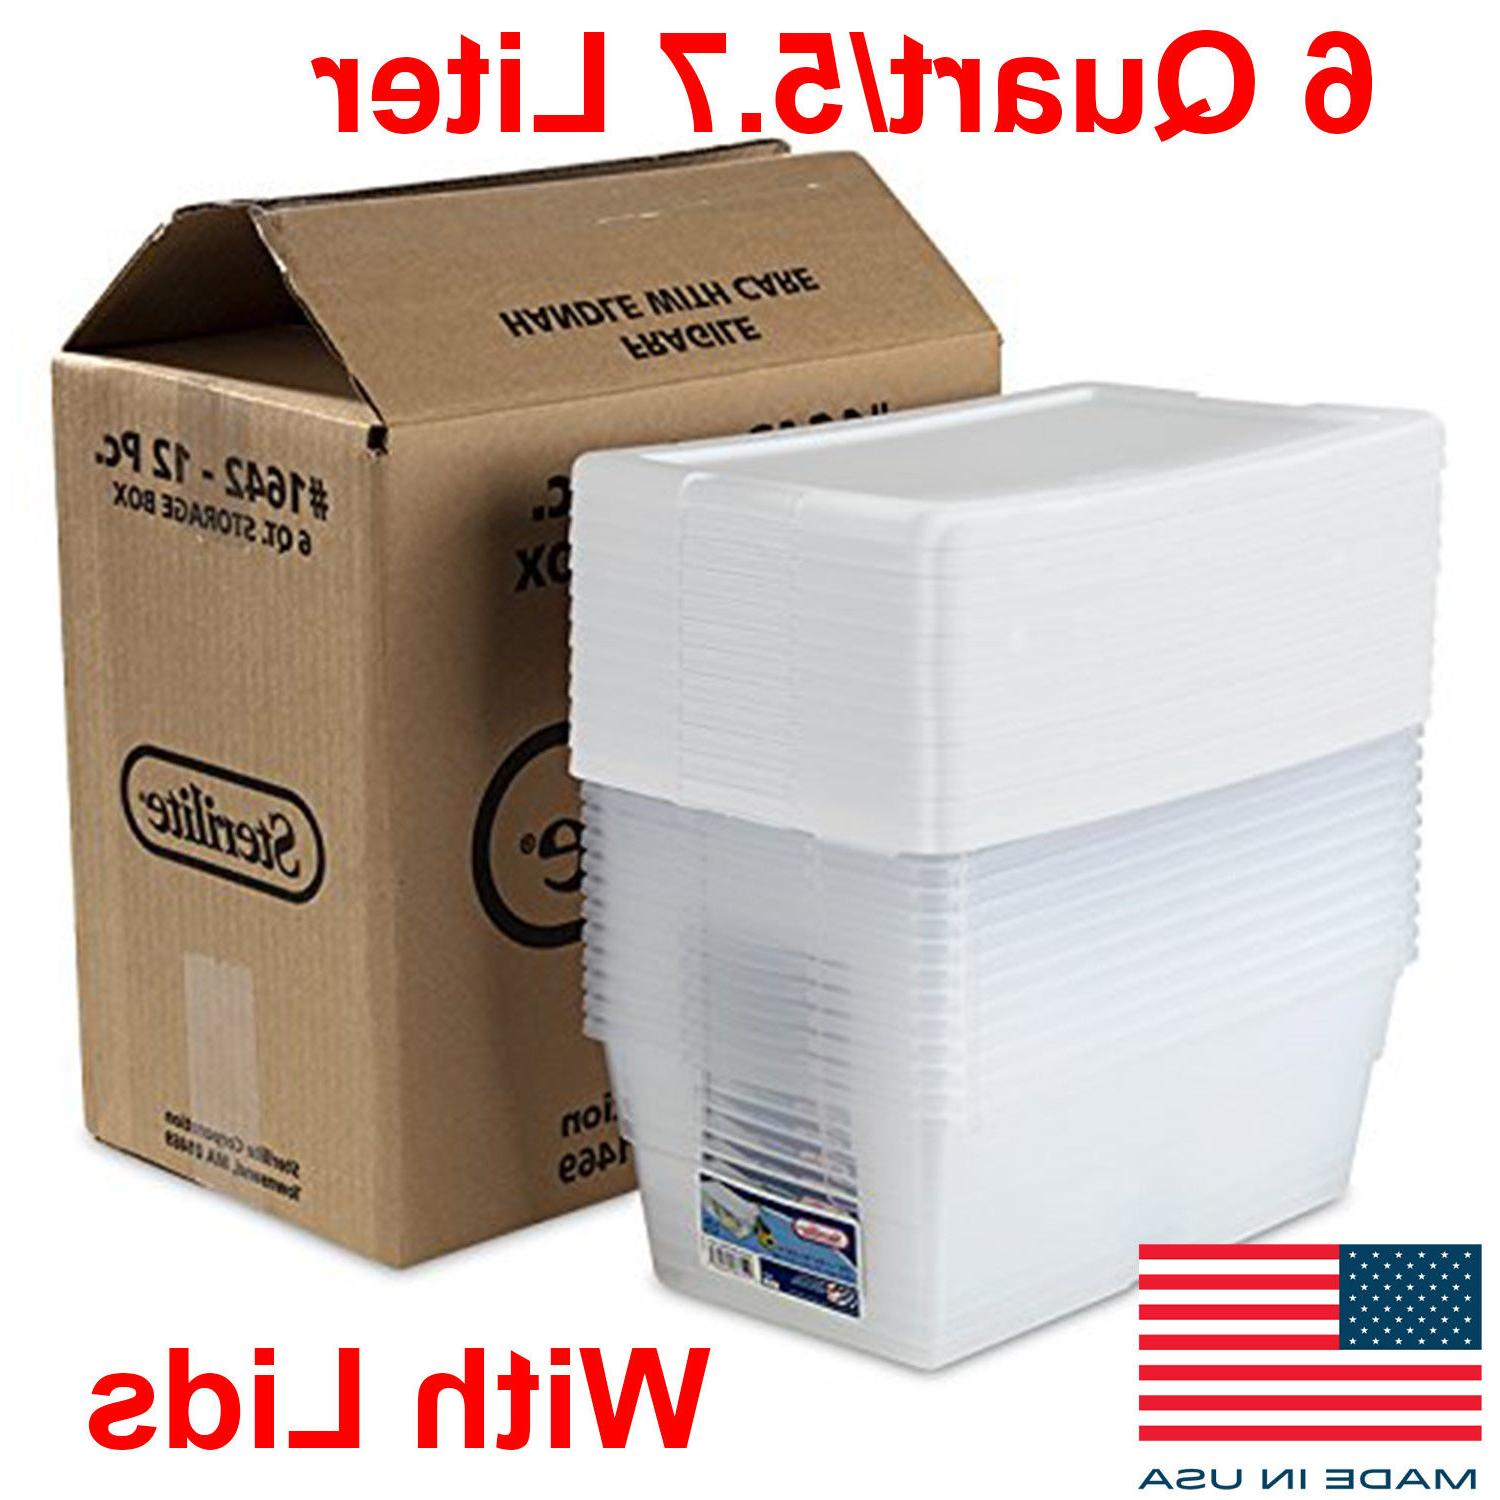 12 Pack Storage Bins Container Plastic Boxes 6 Quart Stackab